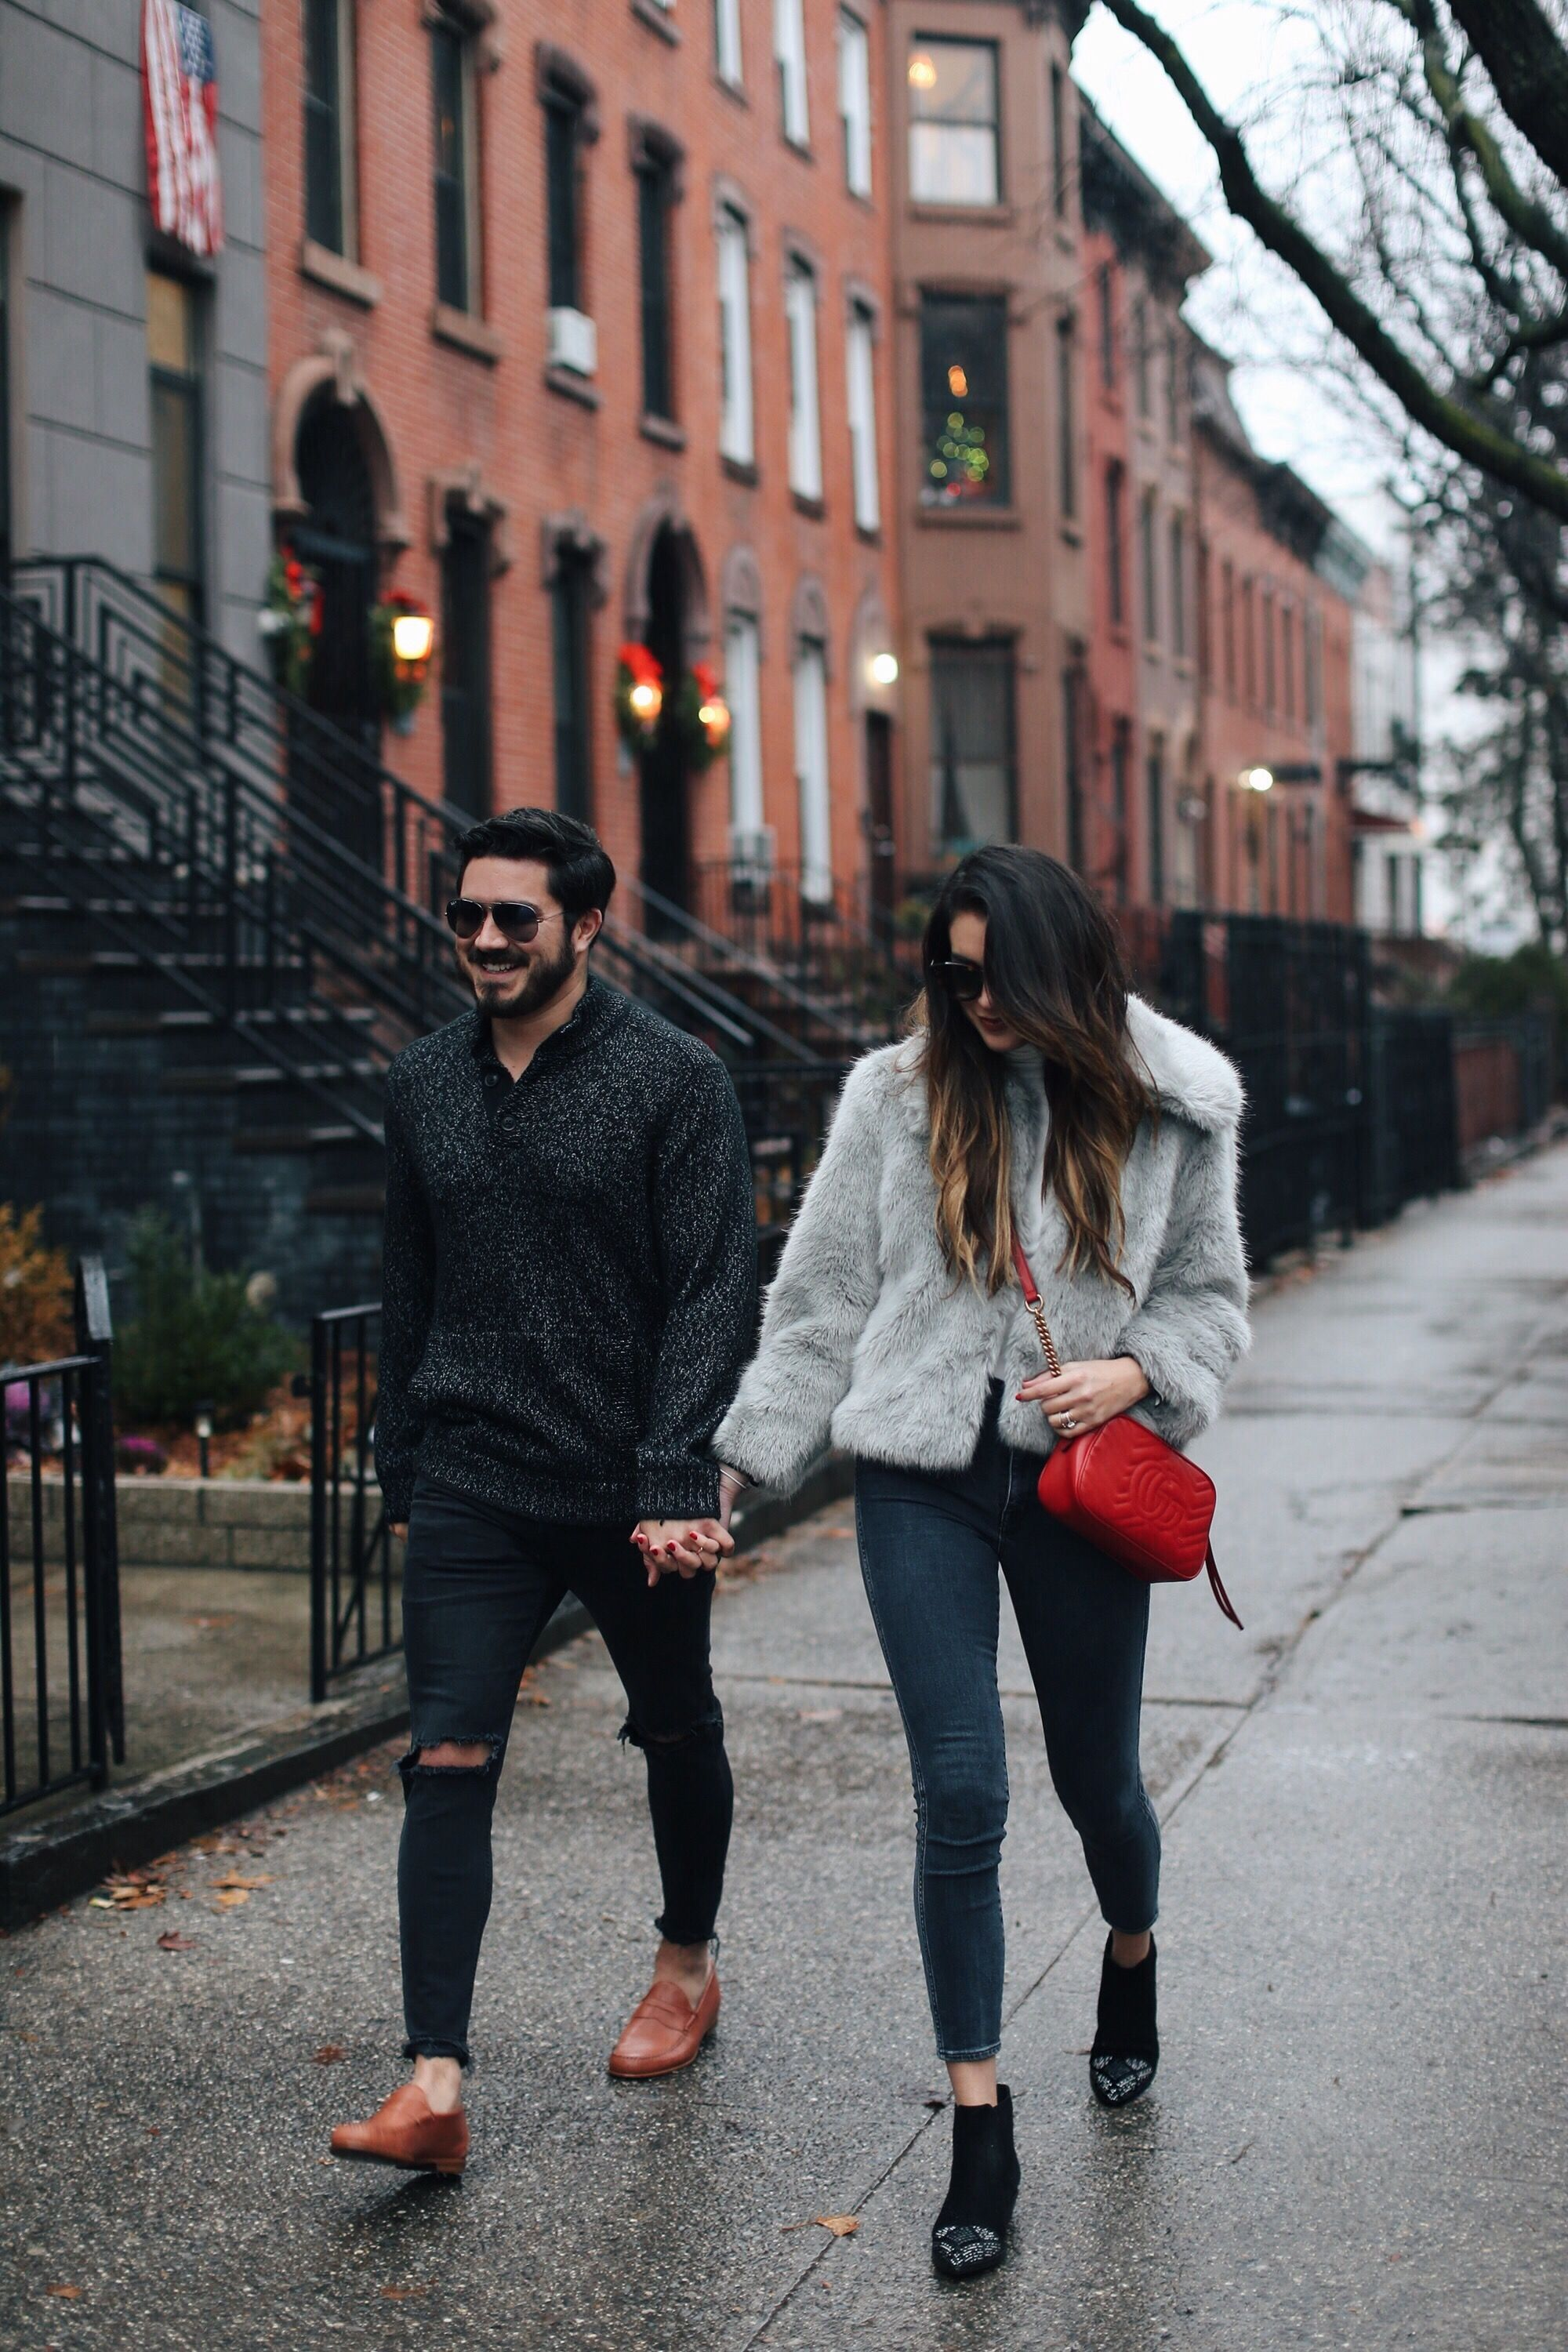 best dating website for serious relationships